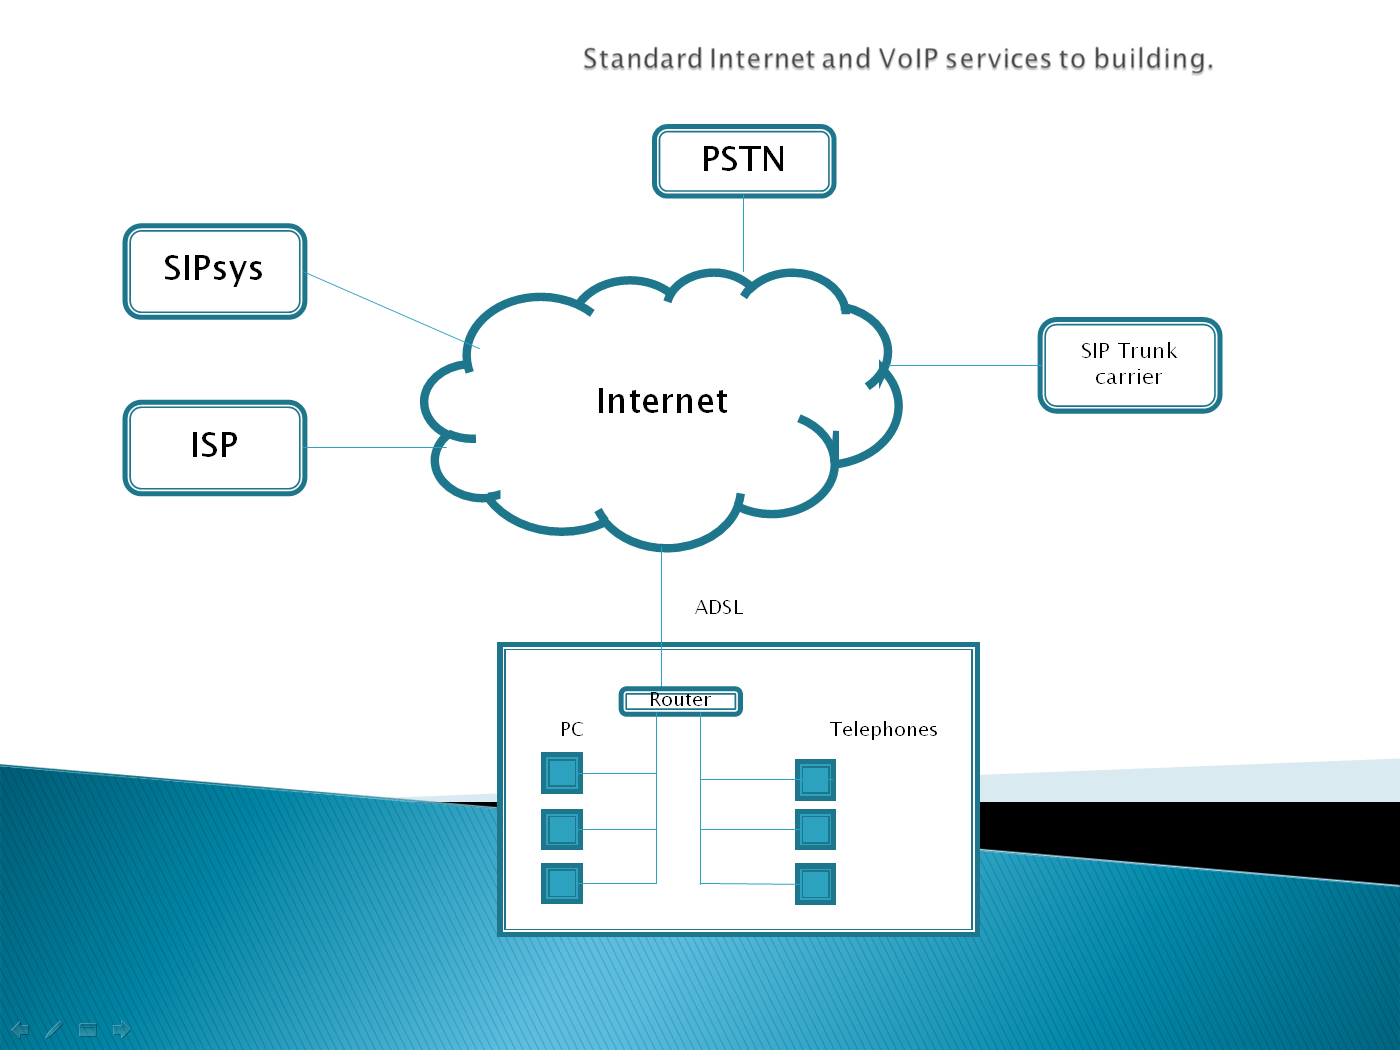 Standard Internet and Voip Services to Building